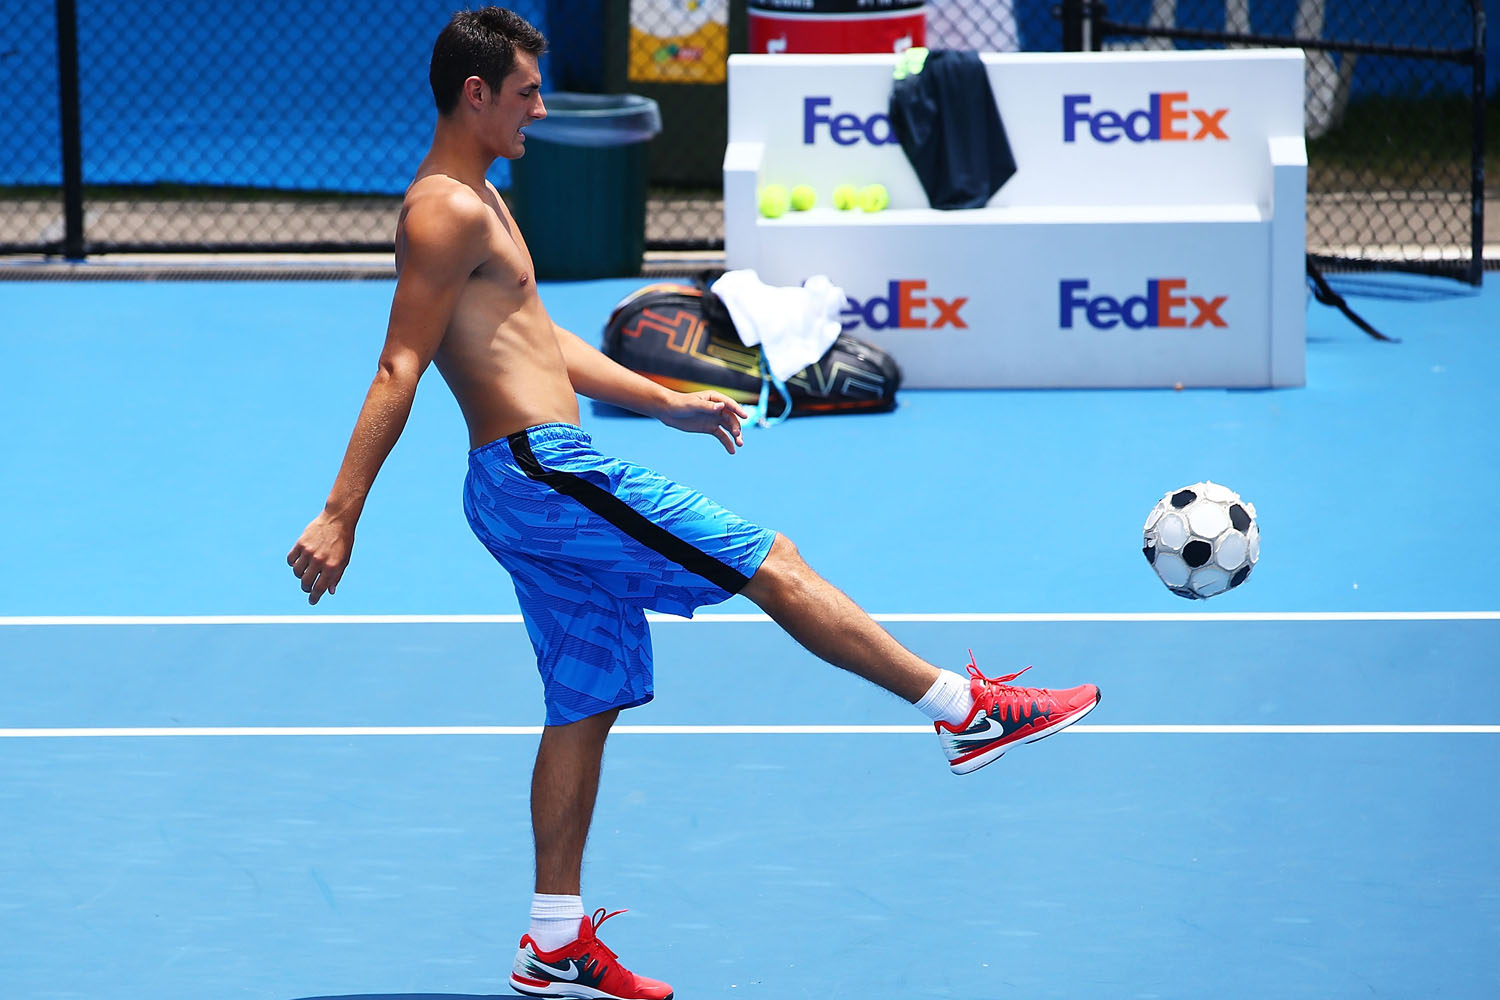 Bernard Tomic warms up before a training session on back courts during the Sydney International at Sydney Olympic Park Tennis Centre in early January 2014.